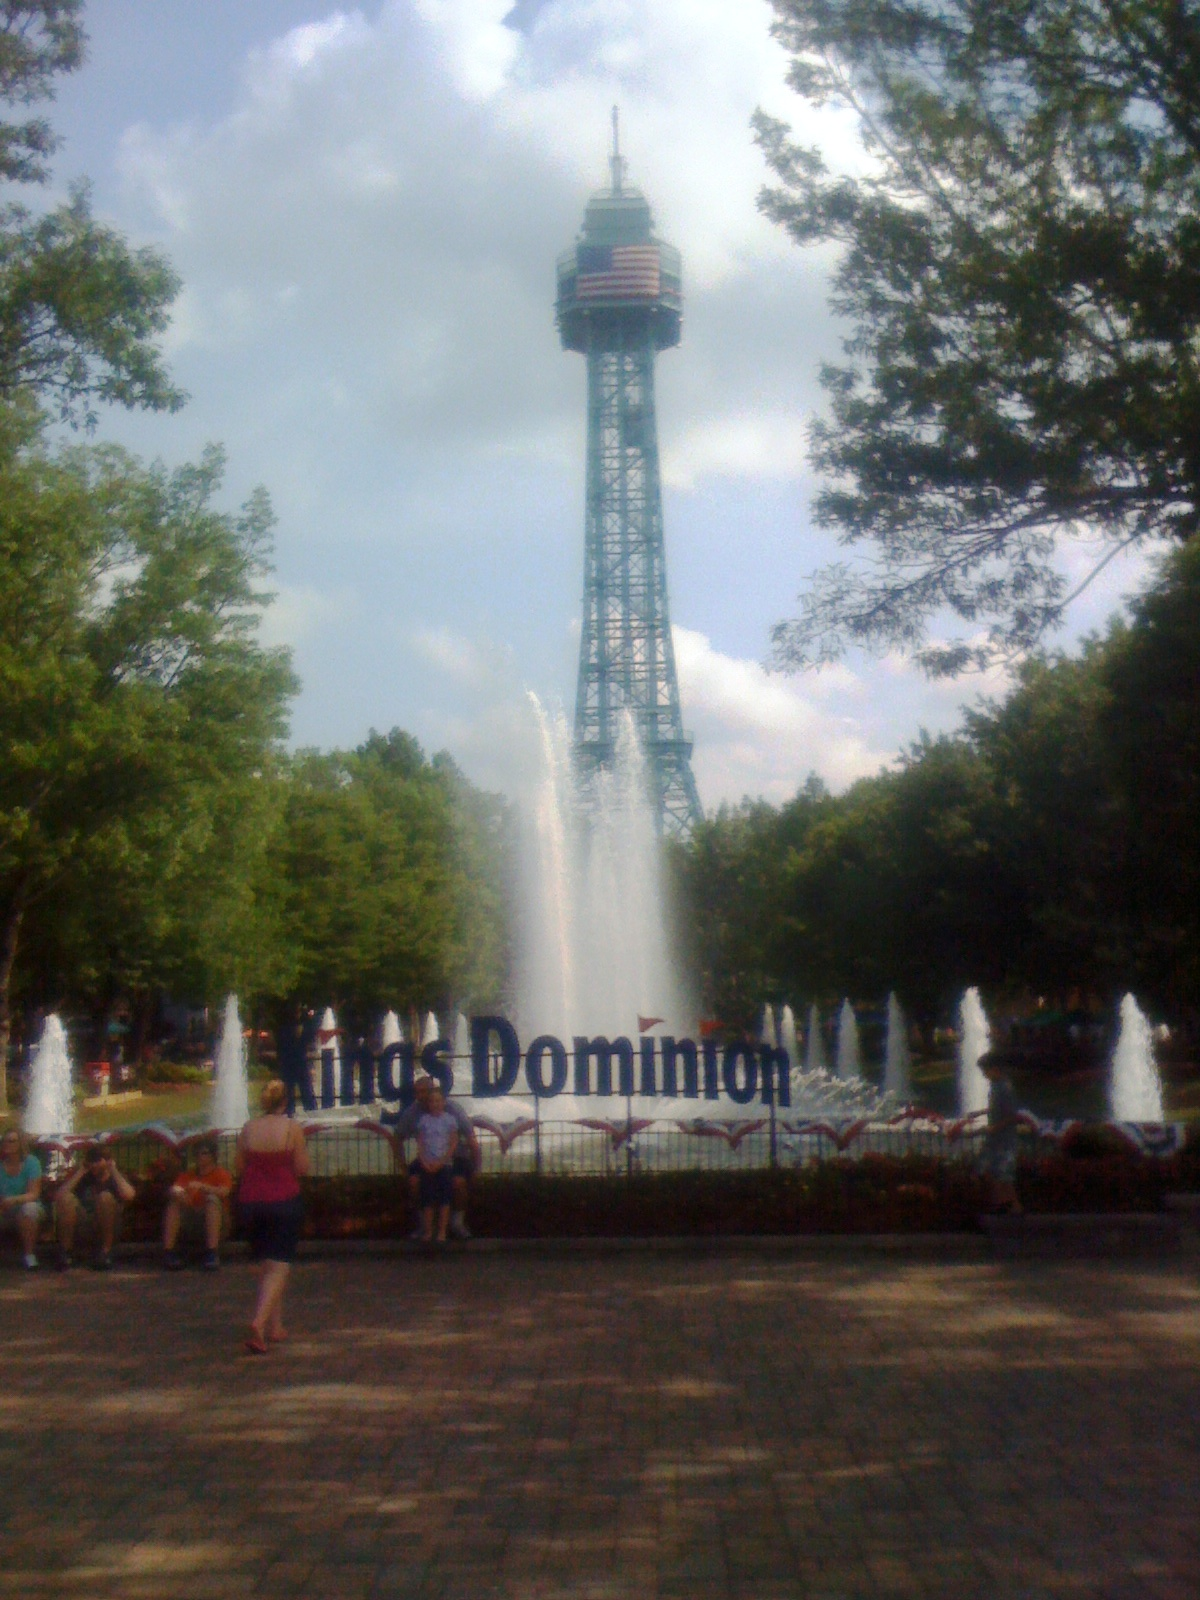 Paramount's Kings Dominion photo